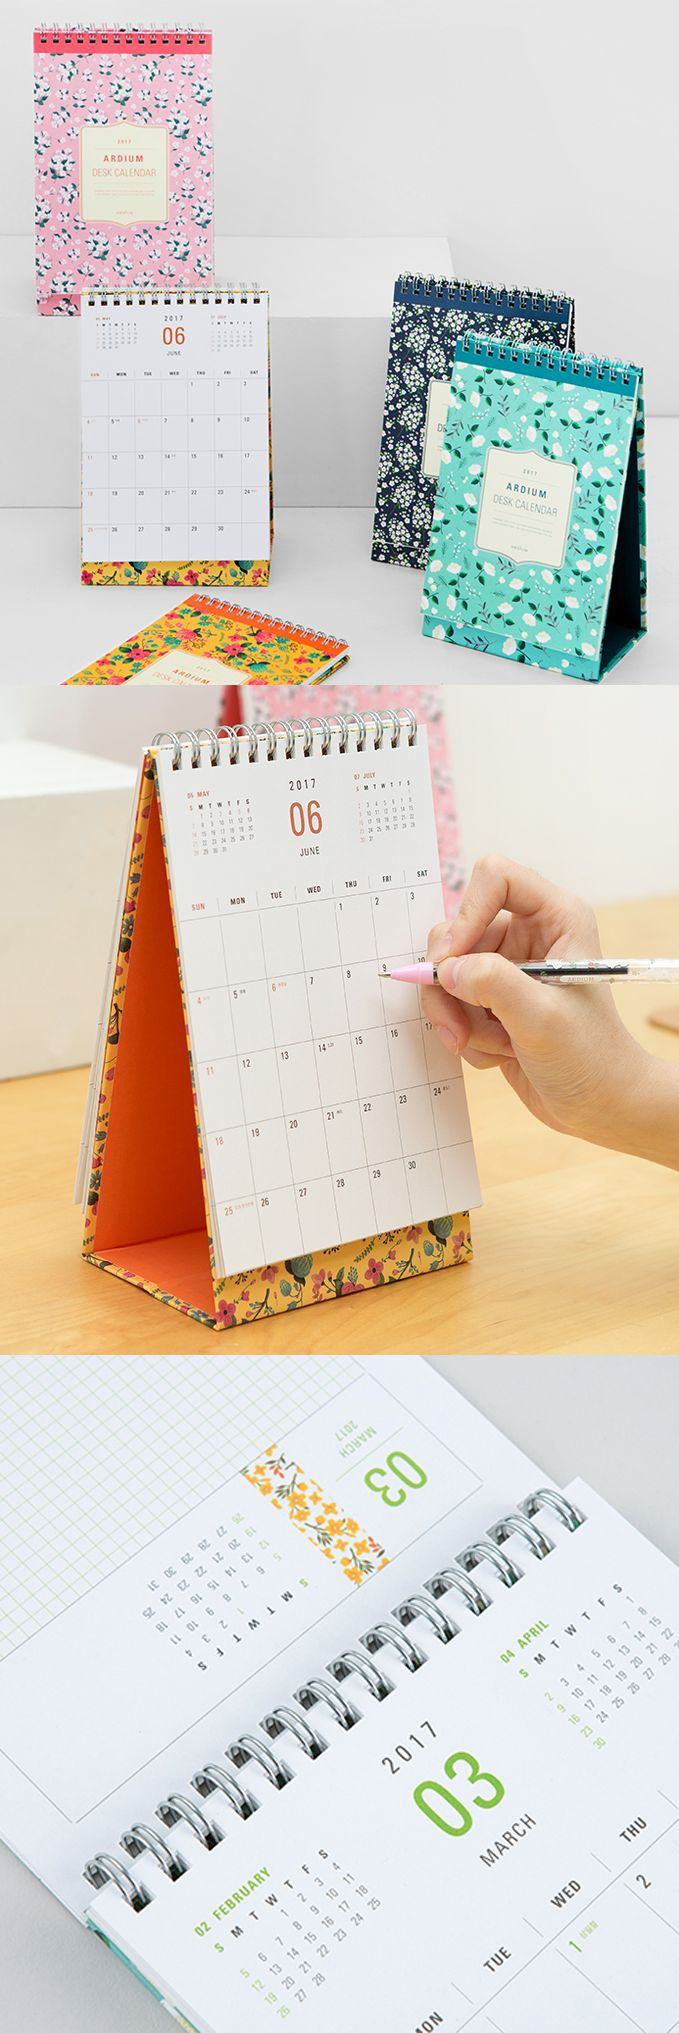 "Add beauty and functionality to your office with the 2017 Ardium Small Desk Calendar dressed in bold floral designs. It makes it easy to see each month at a glance and even has an ""Out of Office"" sign! Who knew upgrading your office decor was this easy? ^.~*"